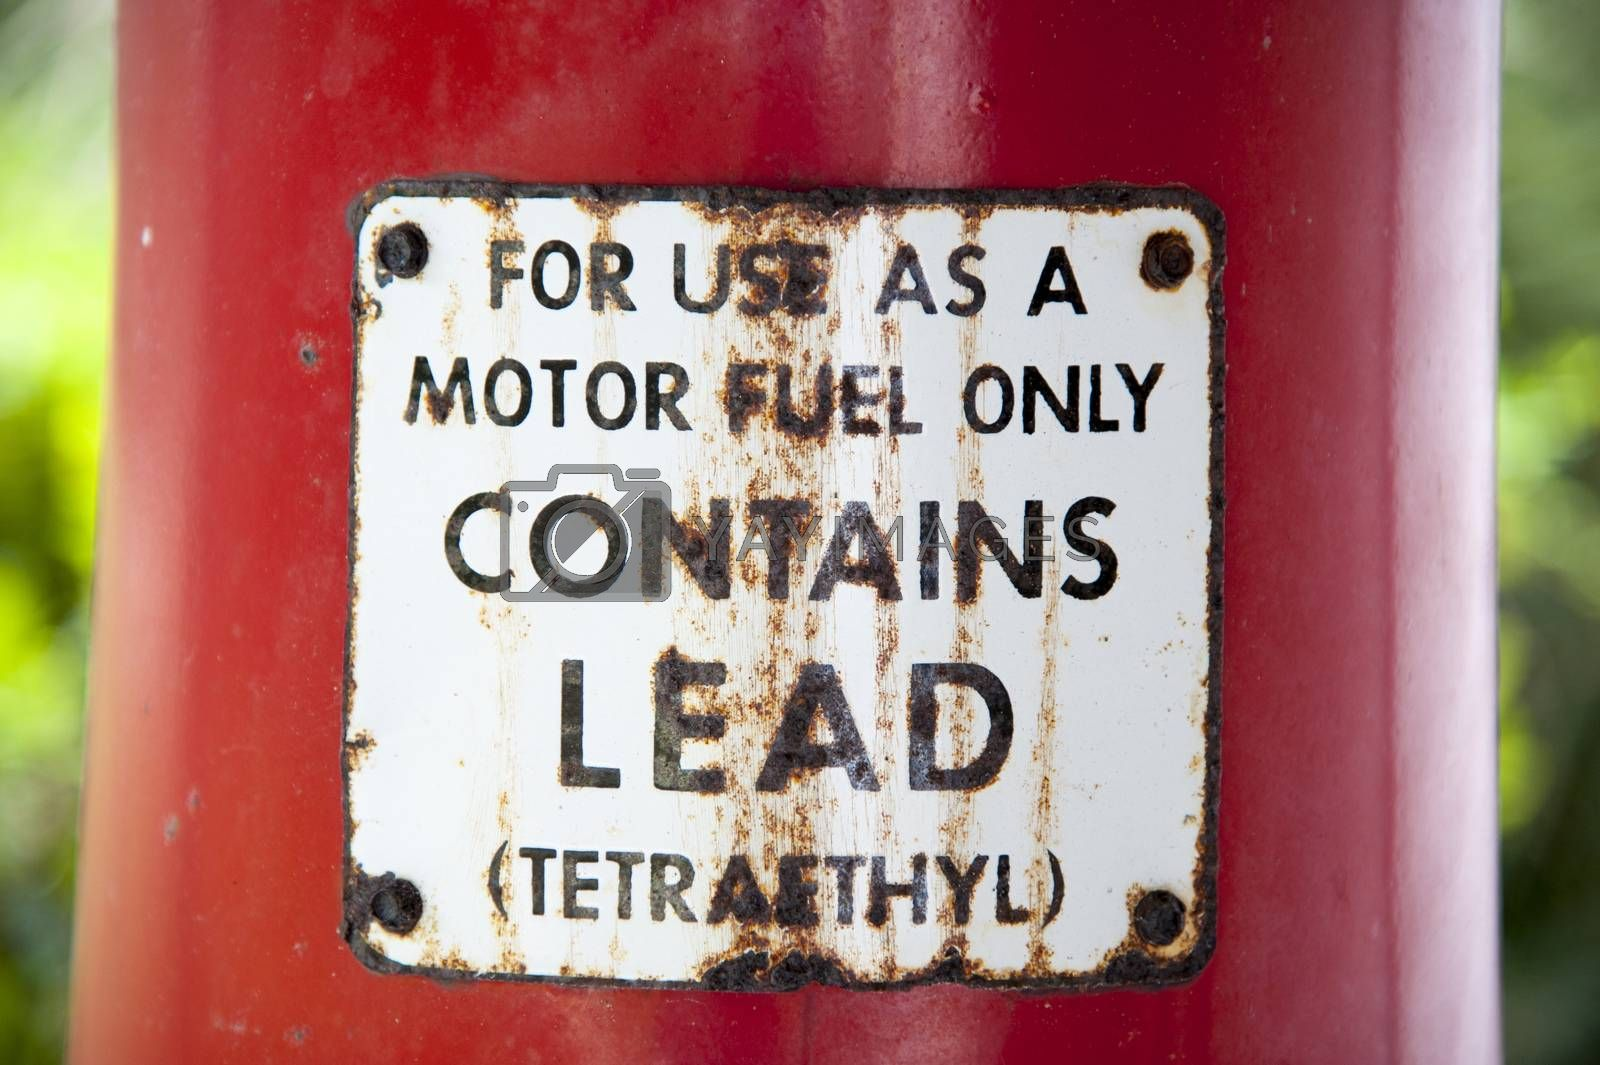 Old vintage rusty fuel pump sign on red pole